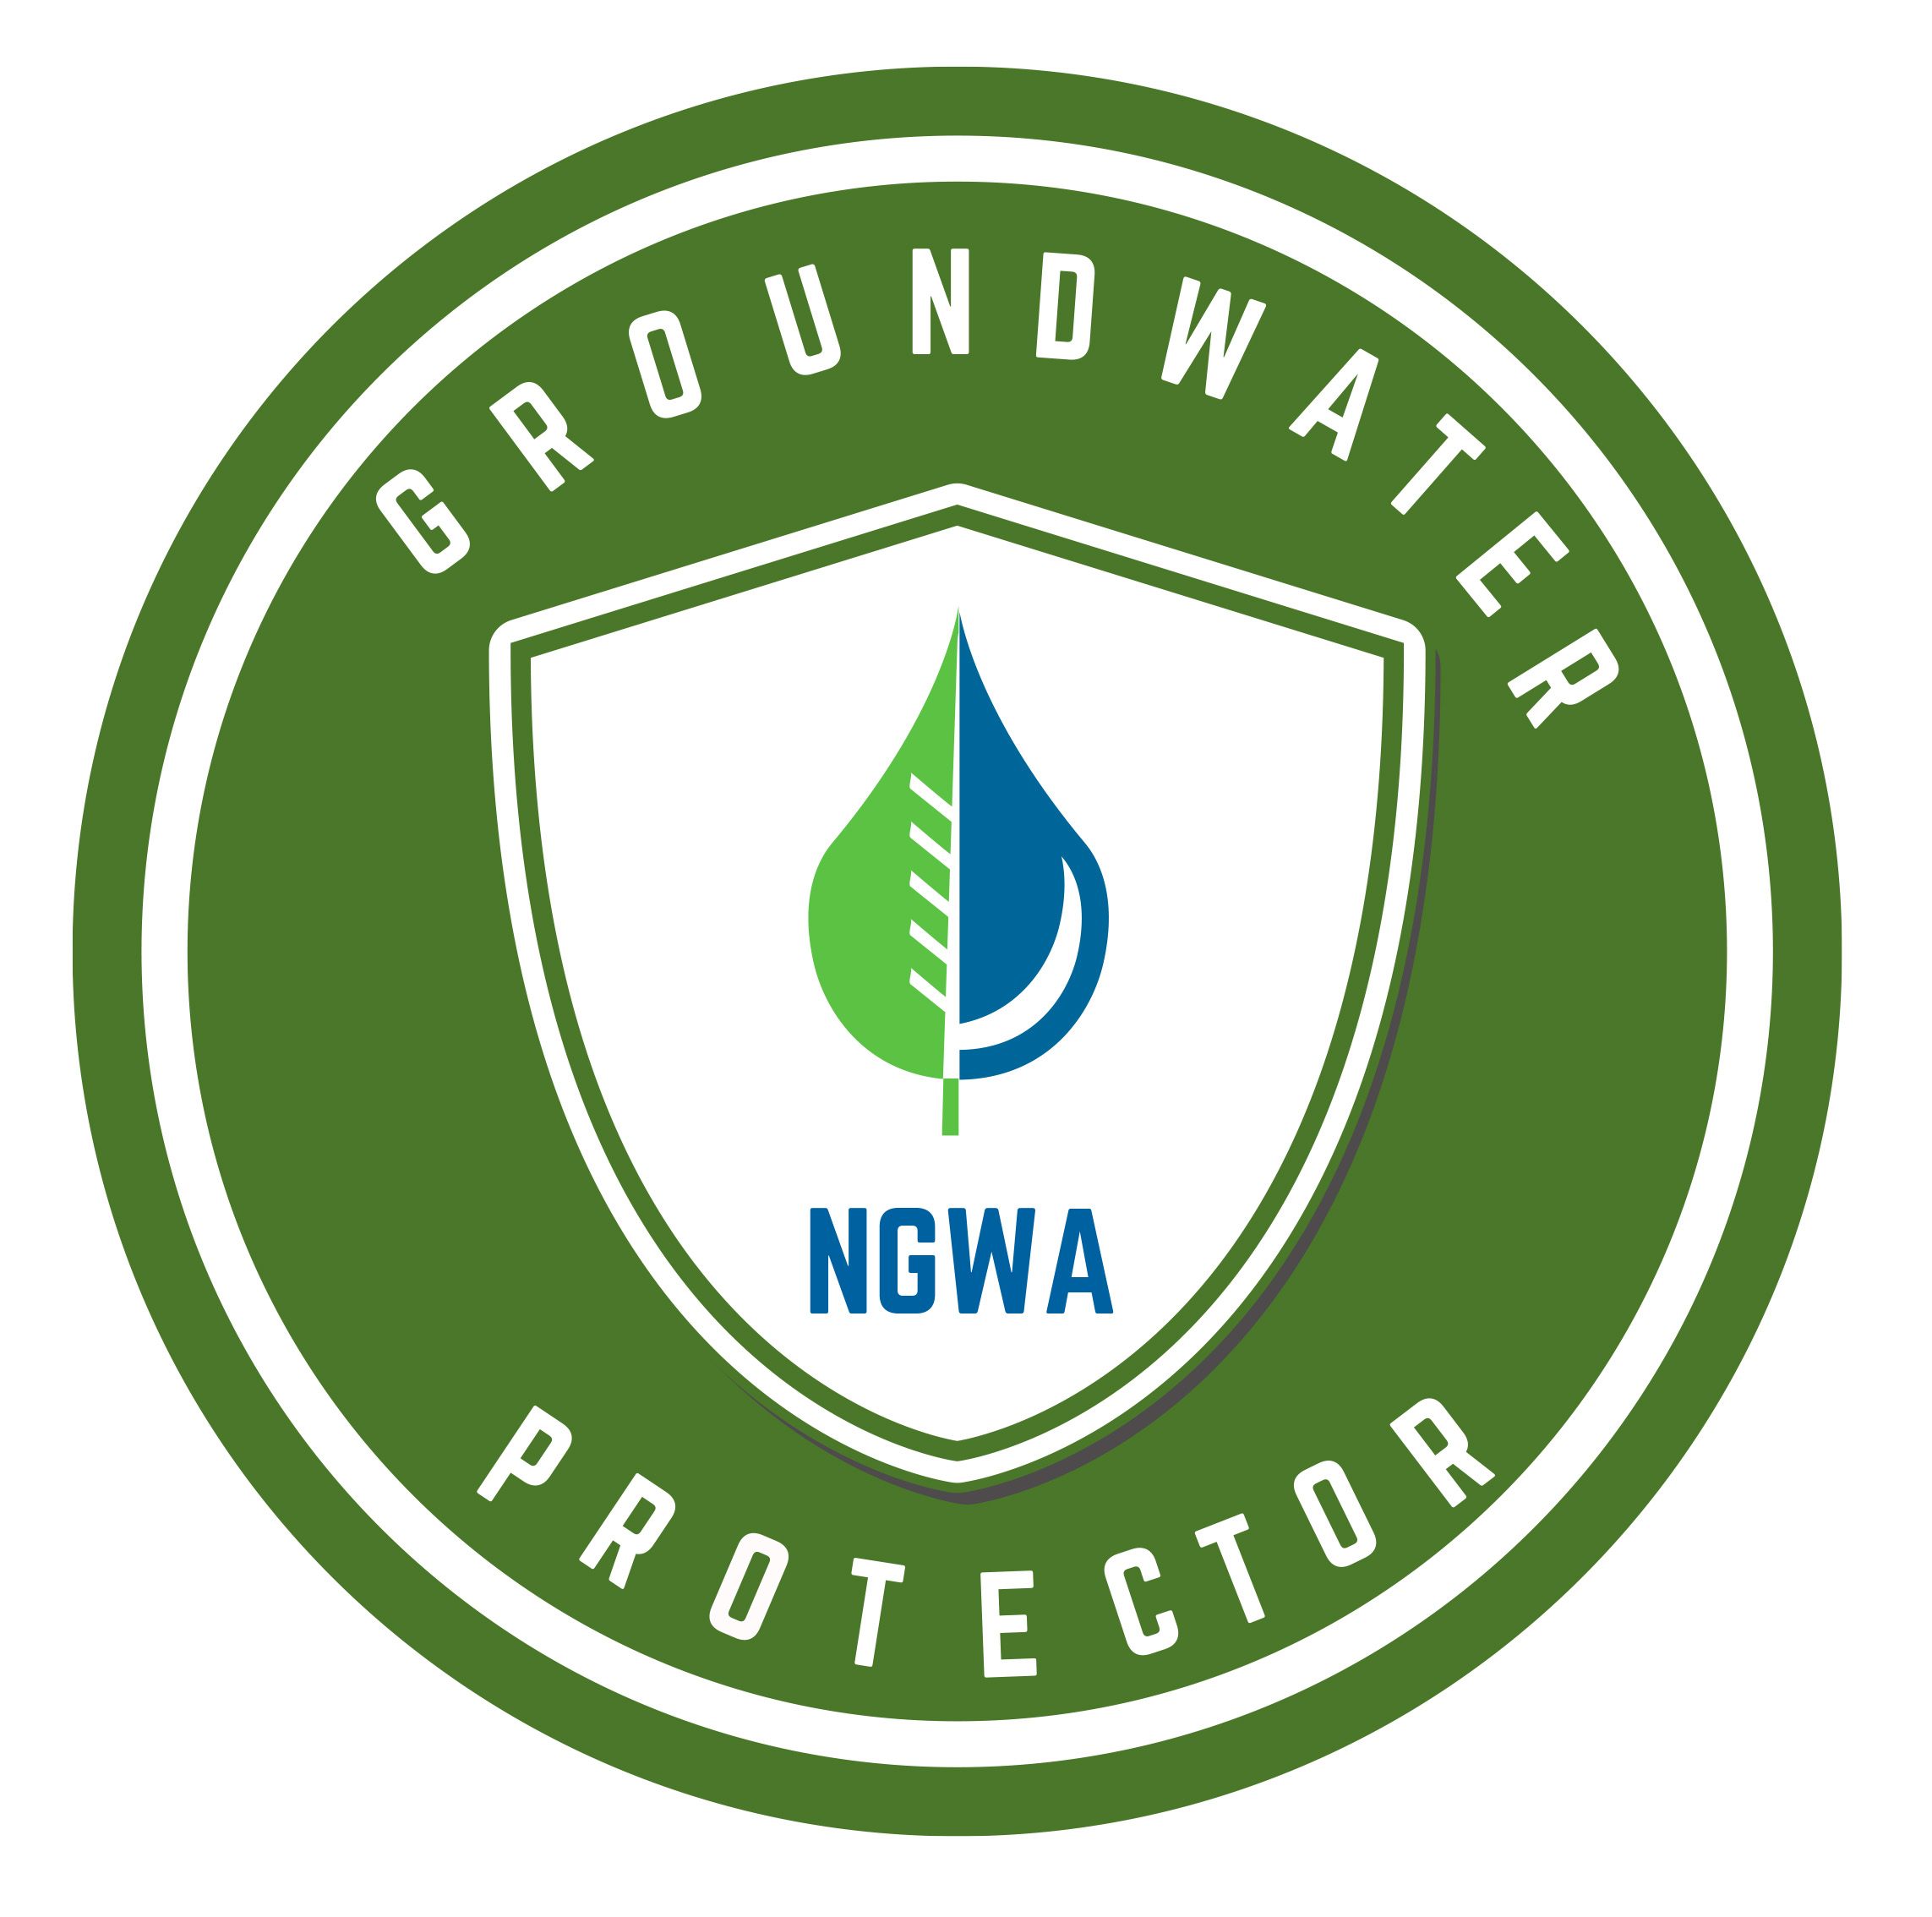 groundwater protector